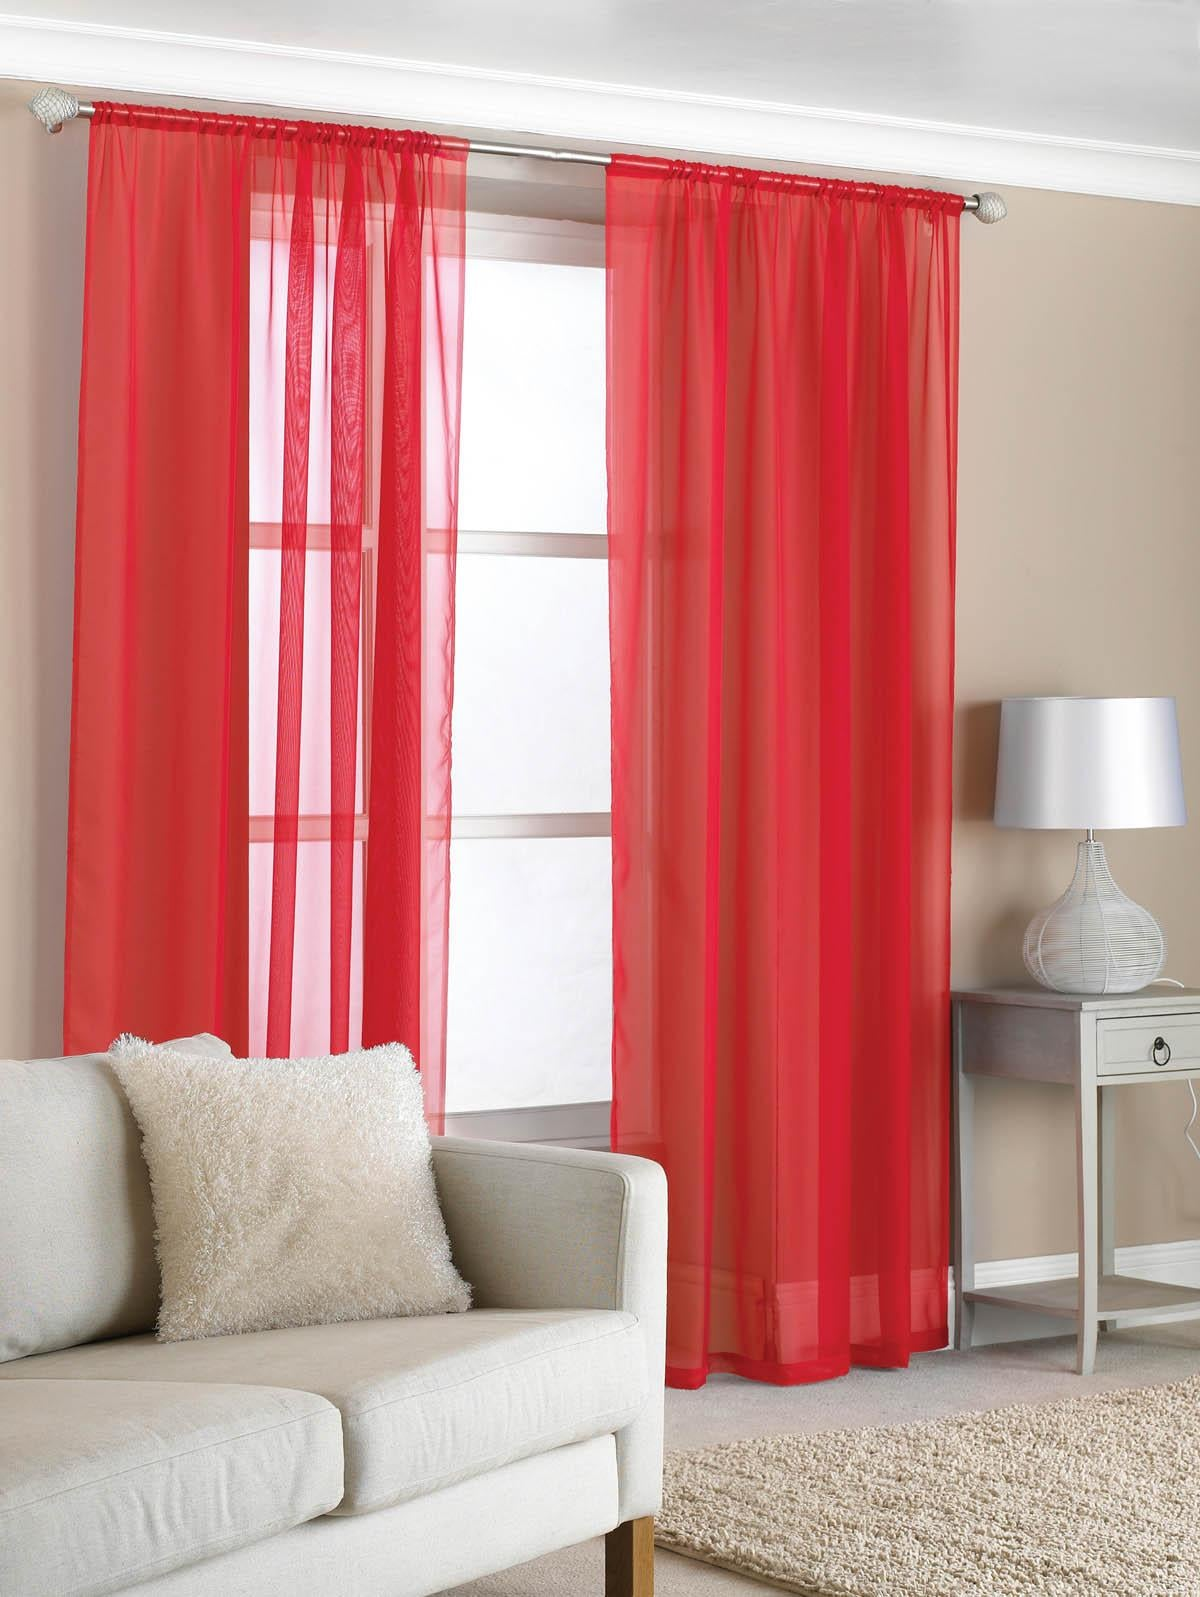 Beamfeature Ready Made Curtains Slot Top Voile (Pair) Red Picture